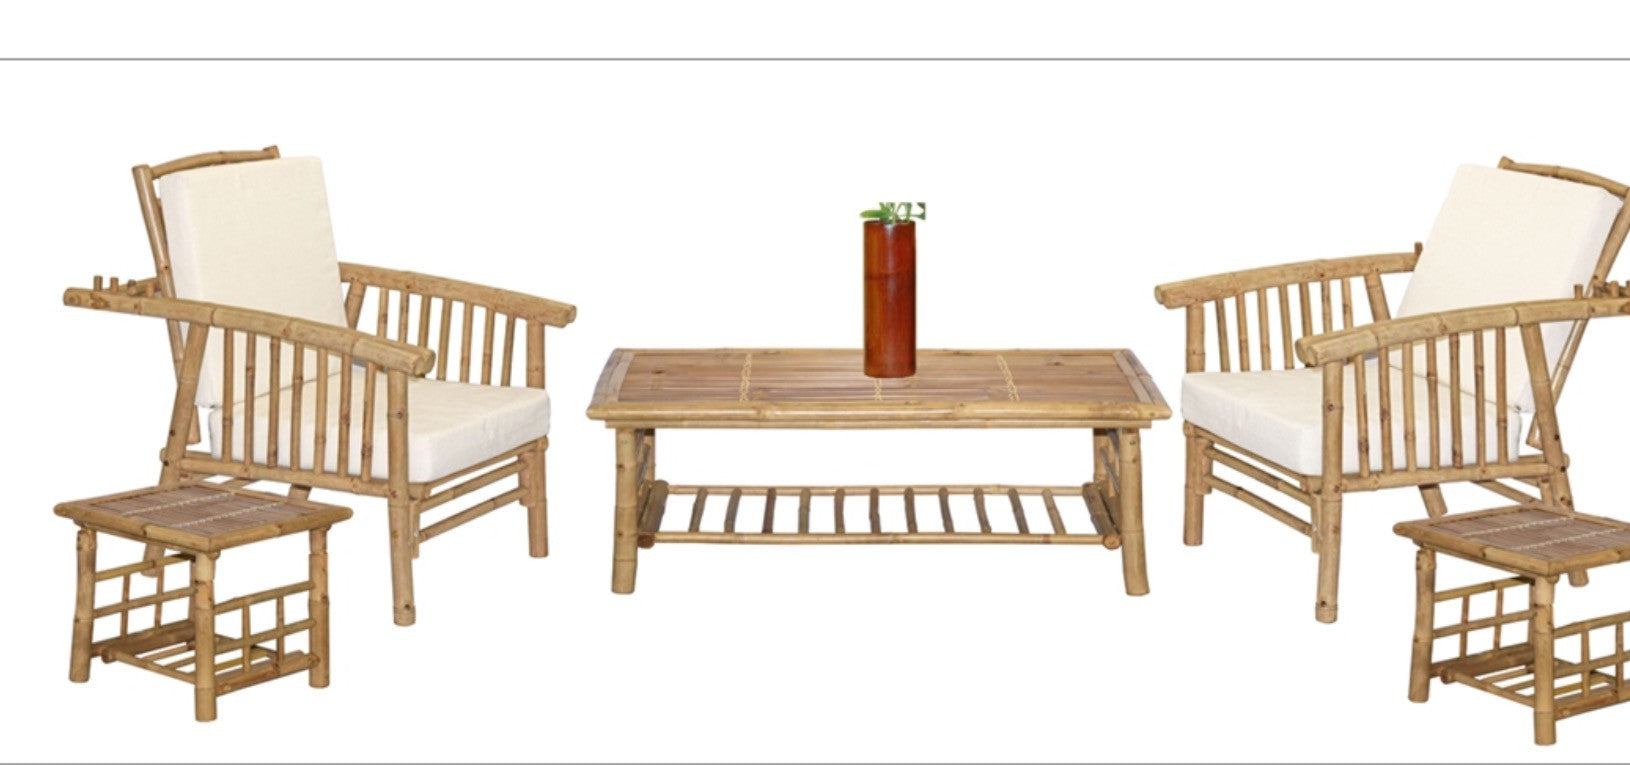 6 Piece Mikong Chair and coffee table set with vase